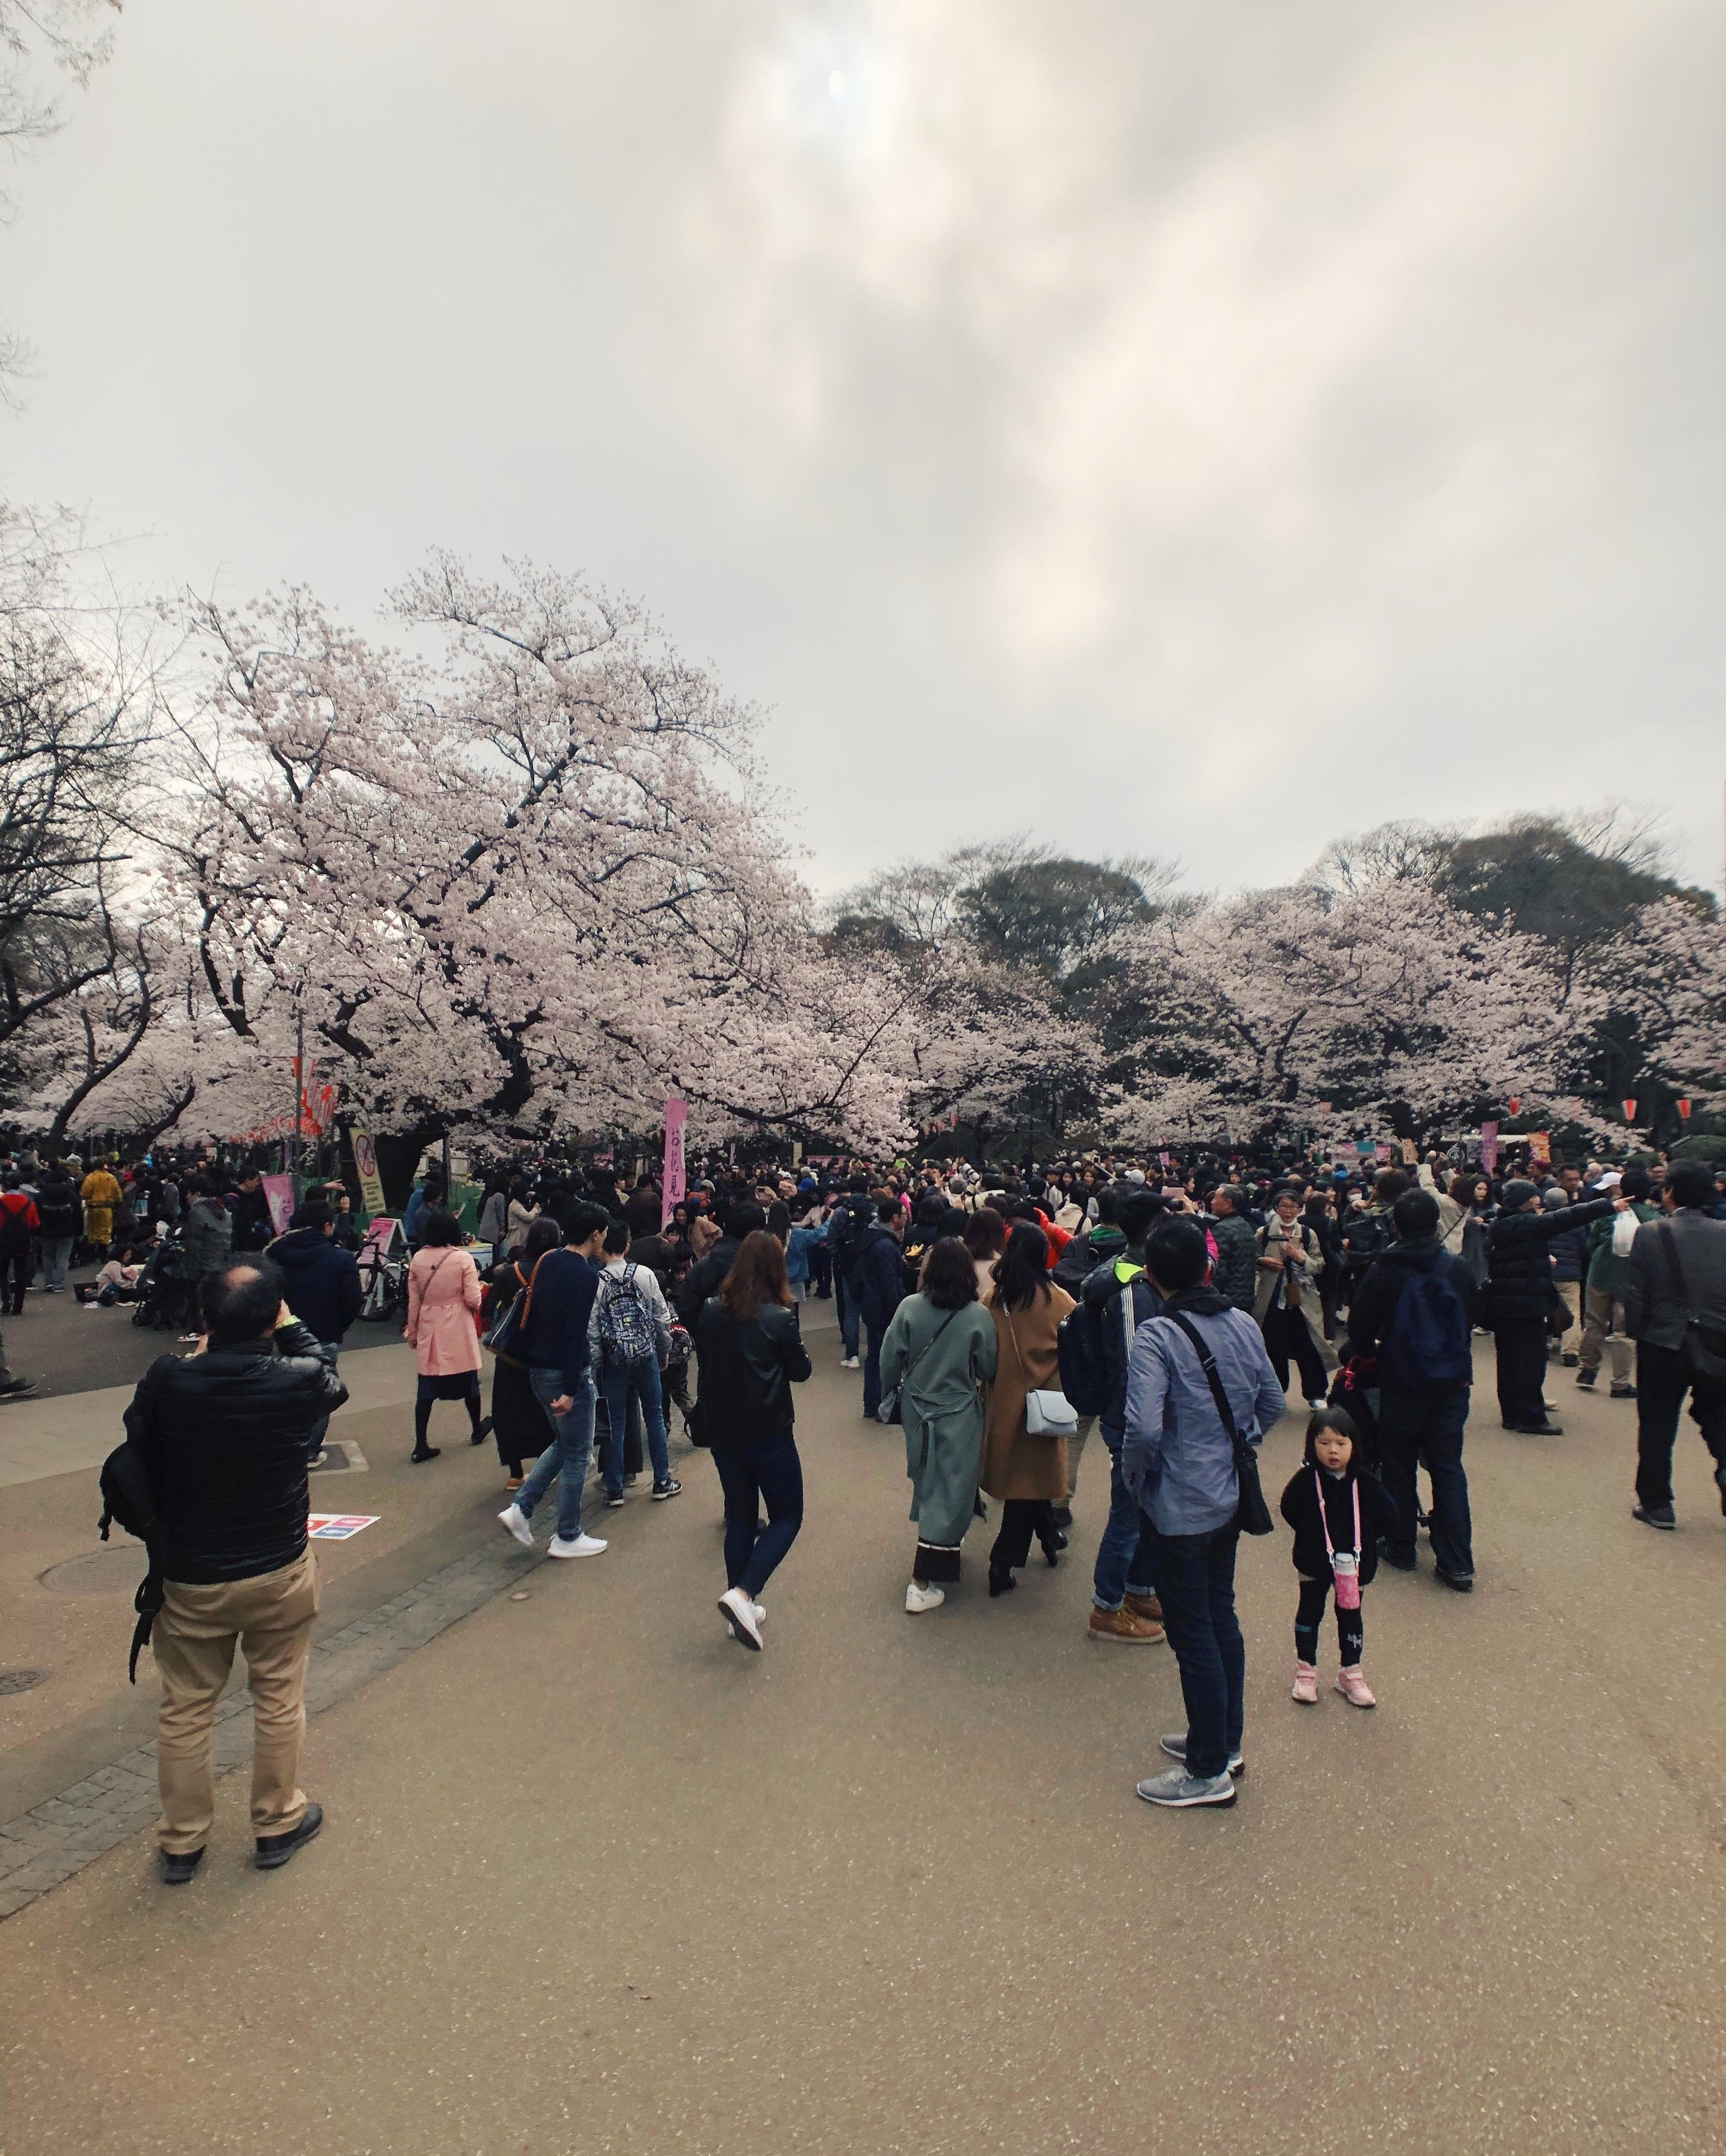 Hurry, get to the cherry blossoms!